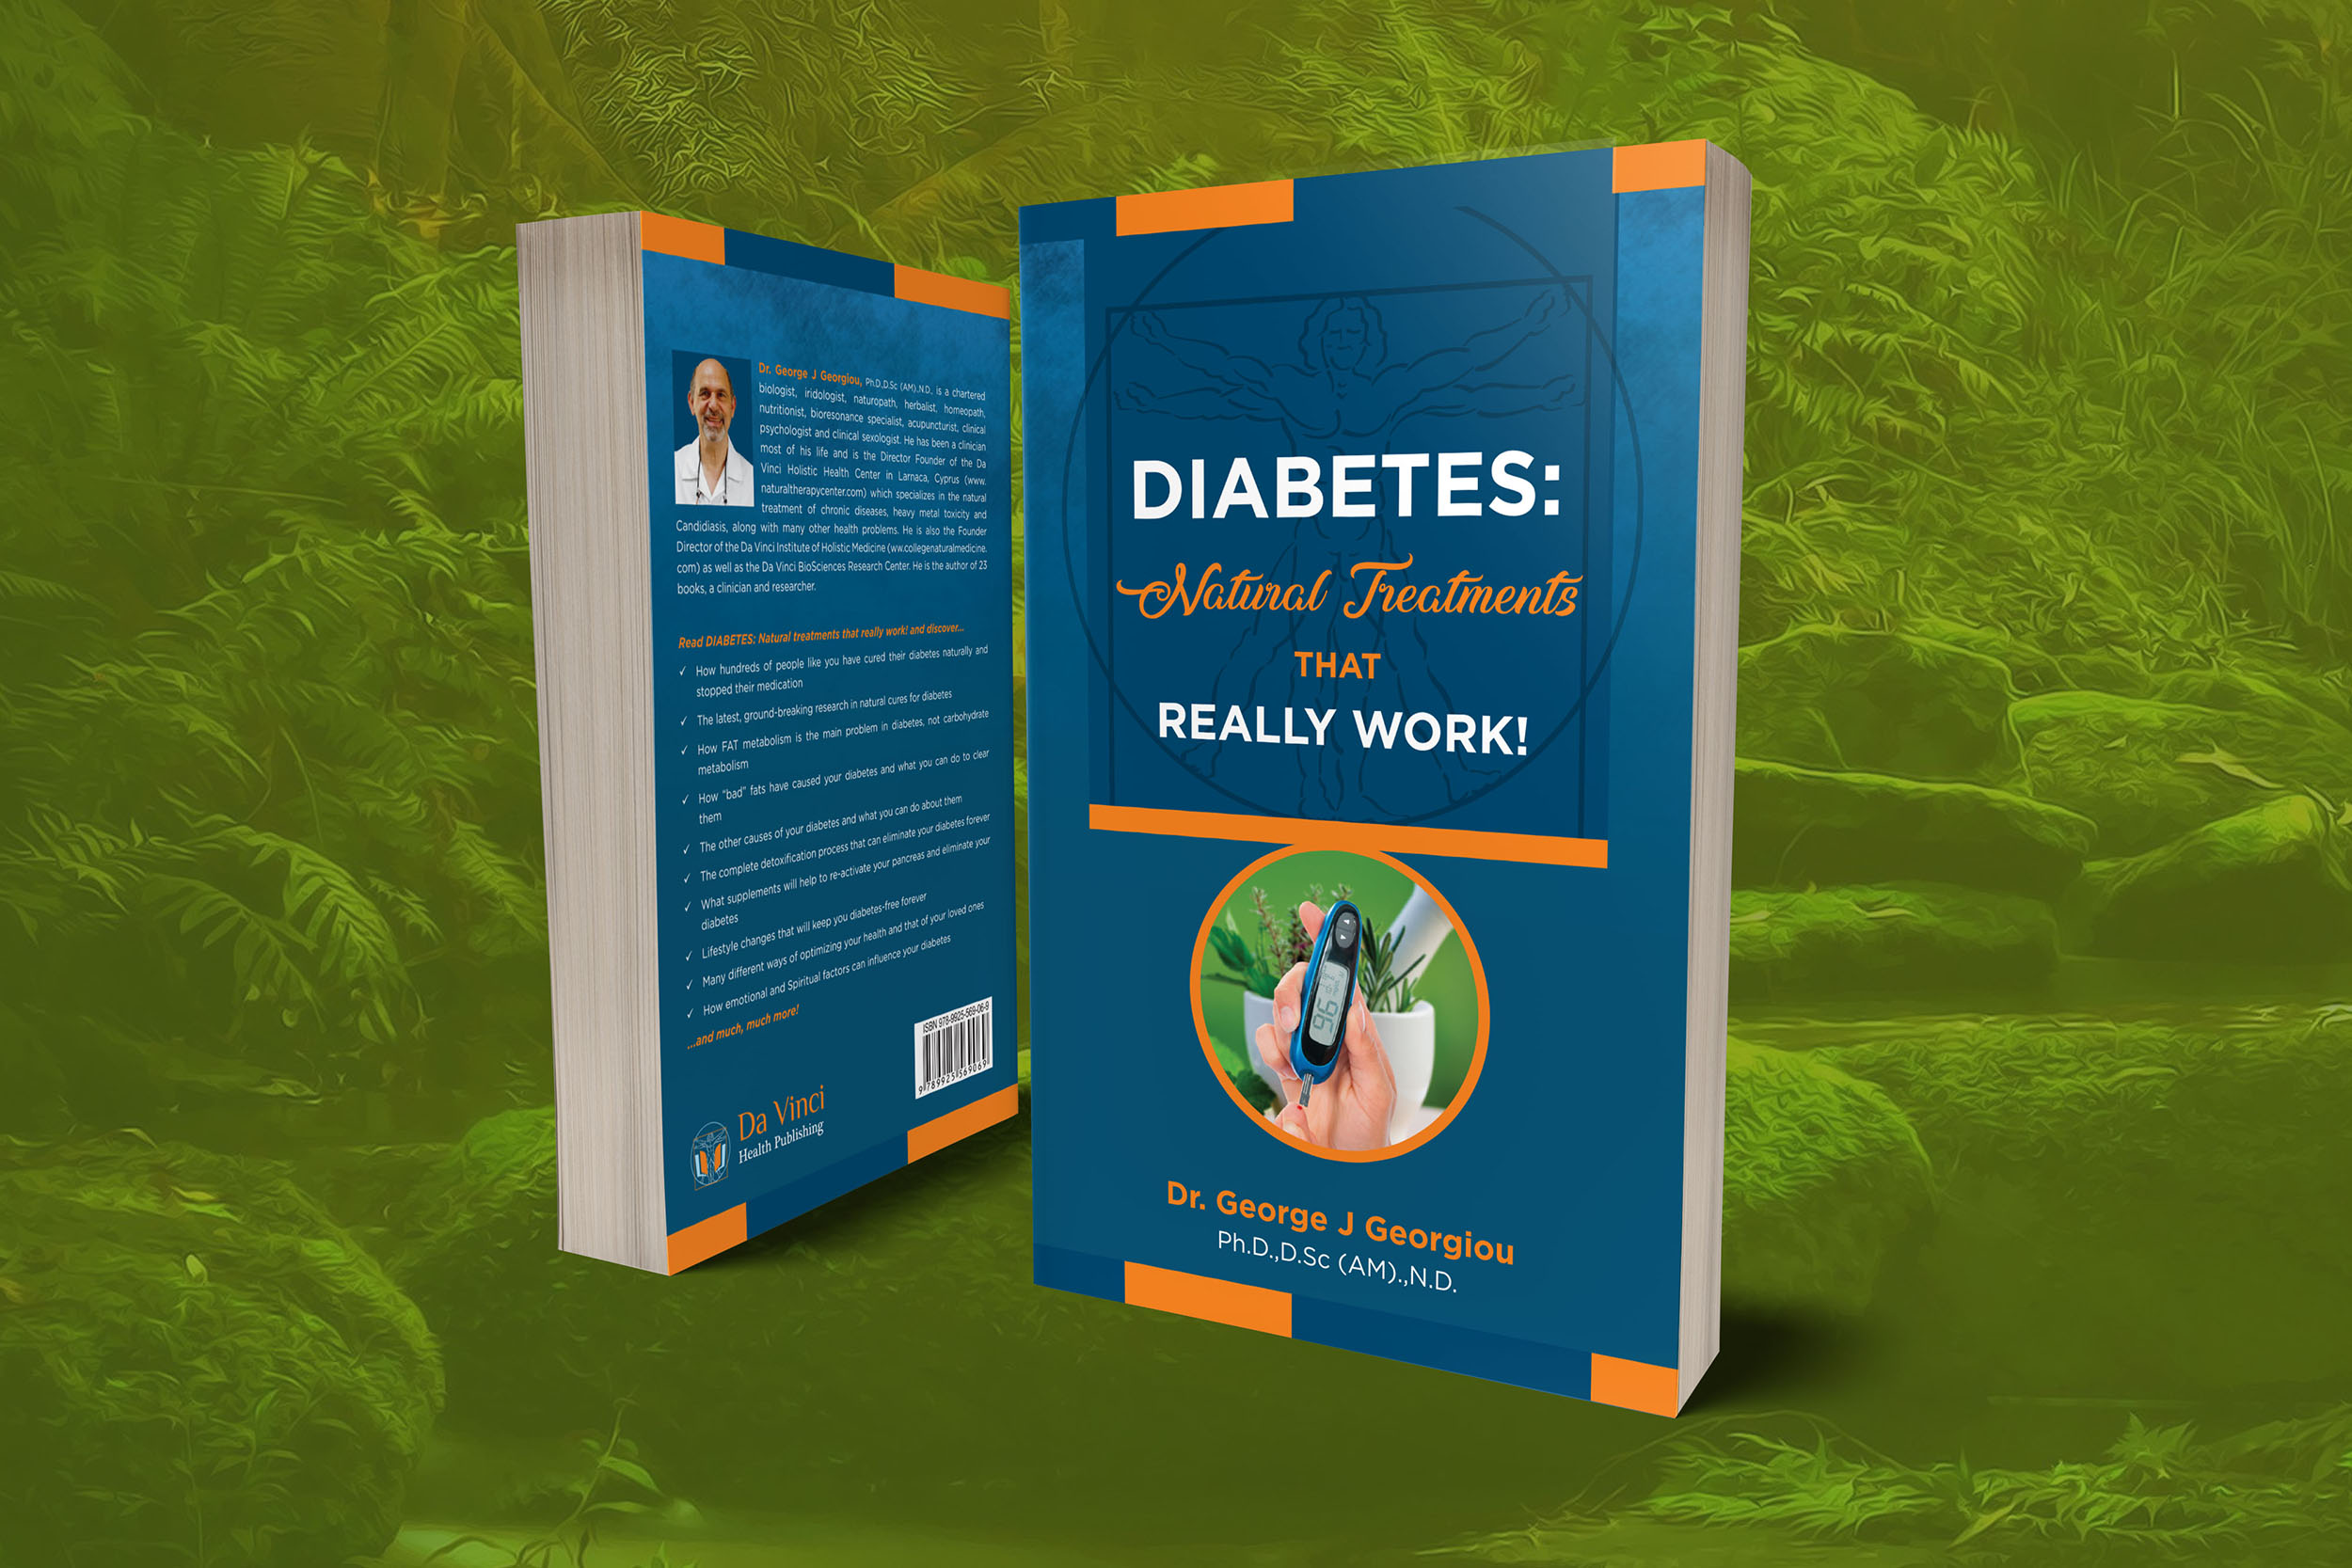 Diabetes: Natural Treatments That Really Work! (E-book)